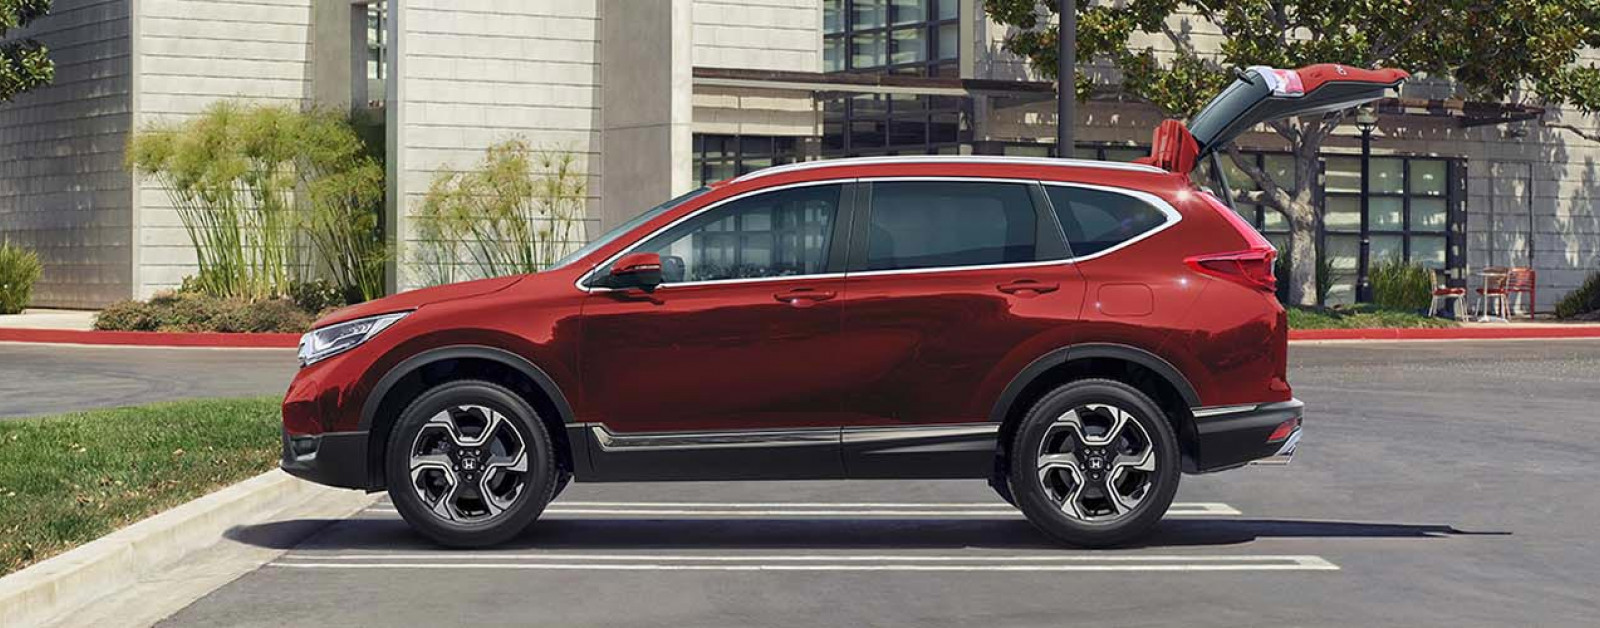 All-New CR-V